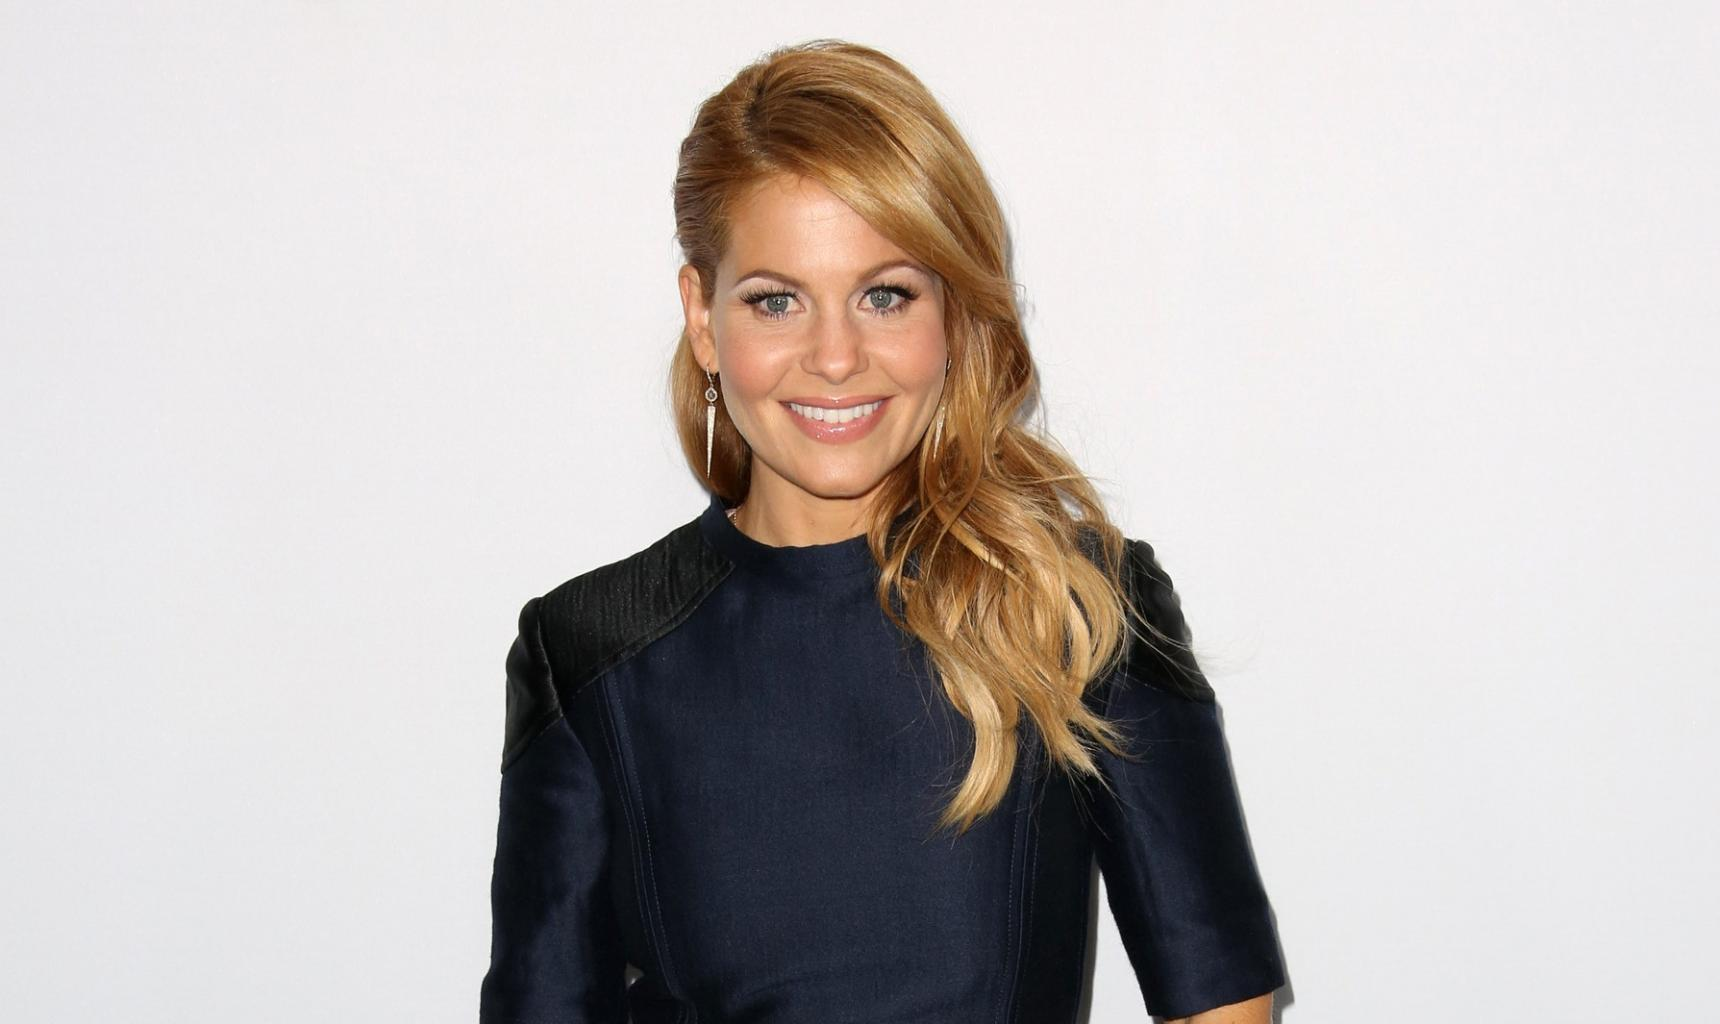 Candace Cameron Bure Is Leaving 'The View'